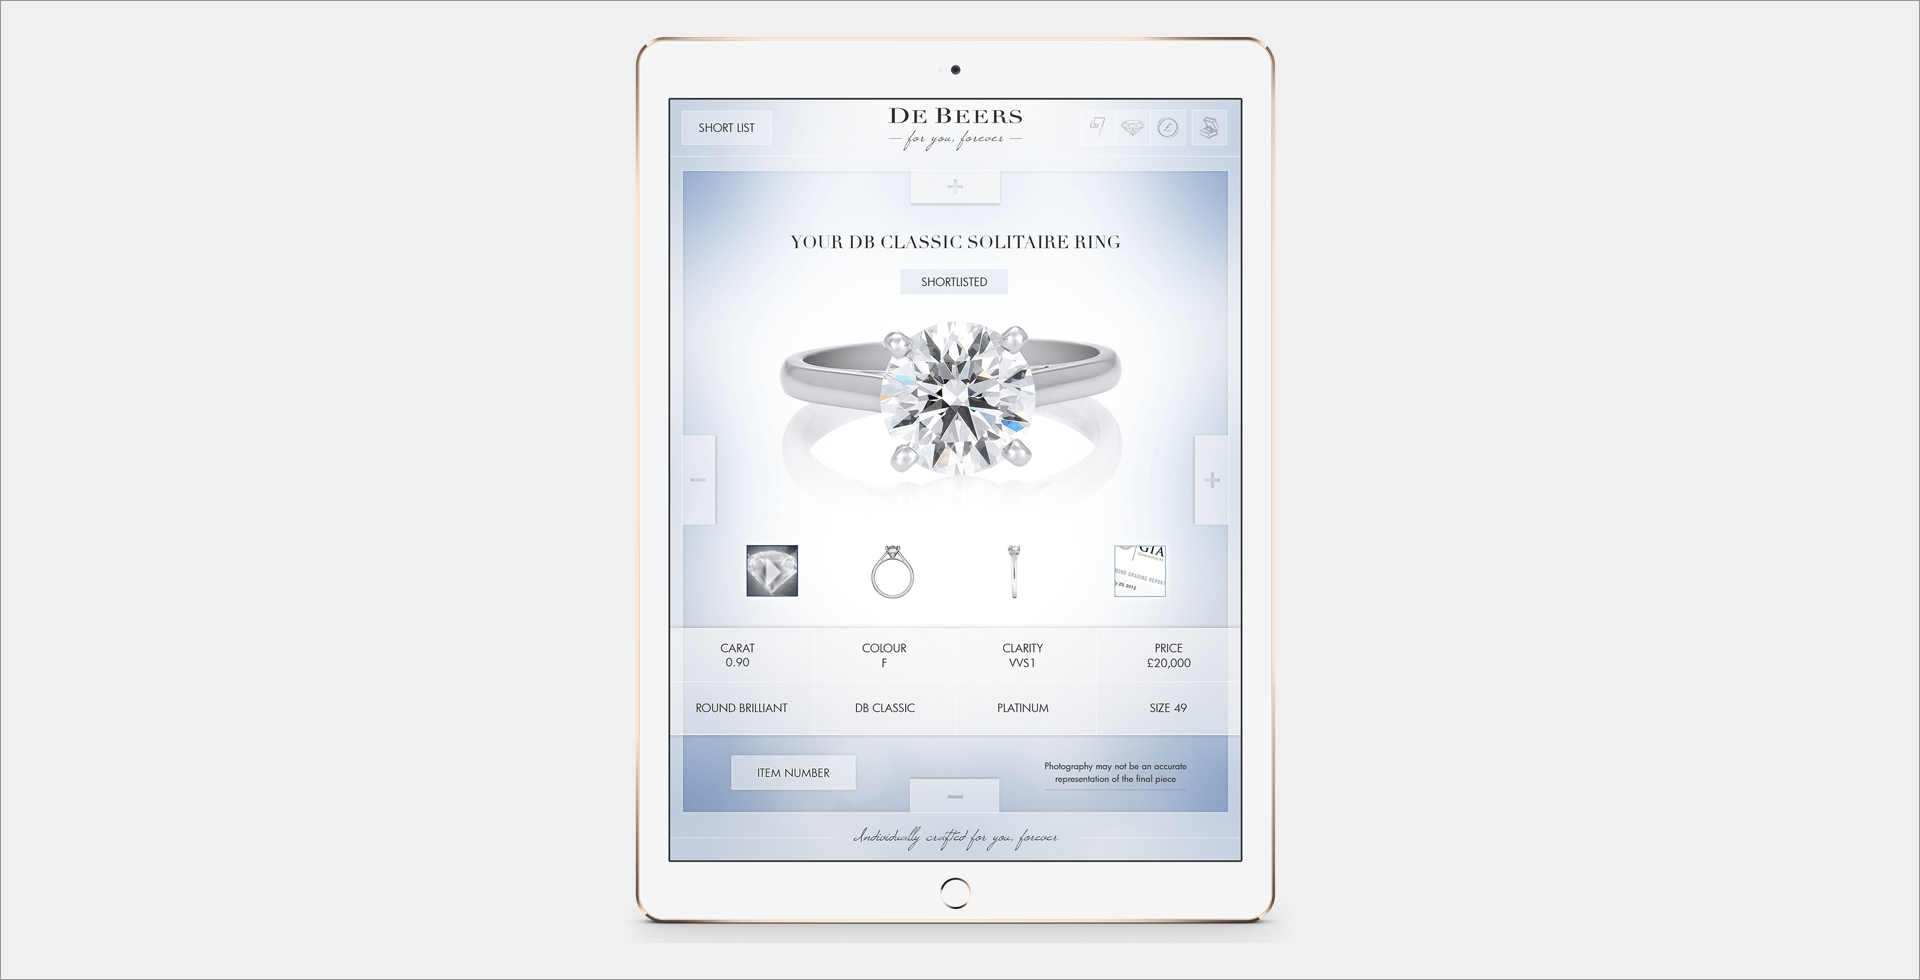 iPad screenshot of De Beers website